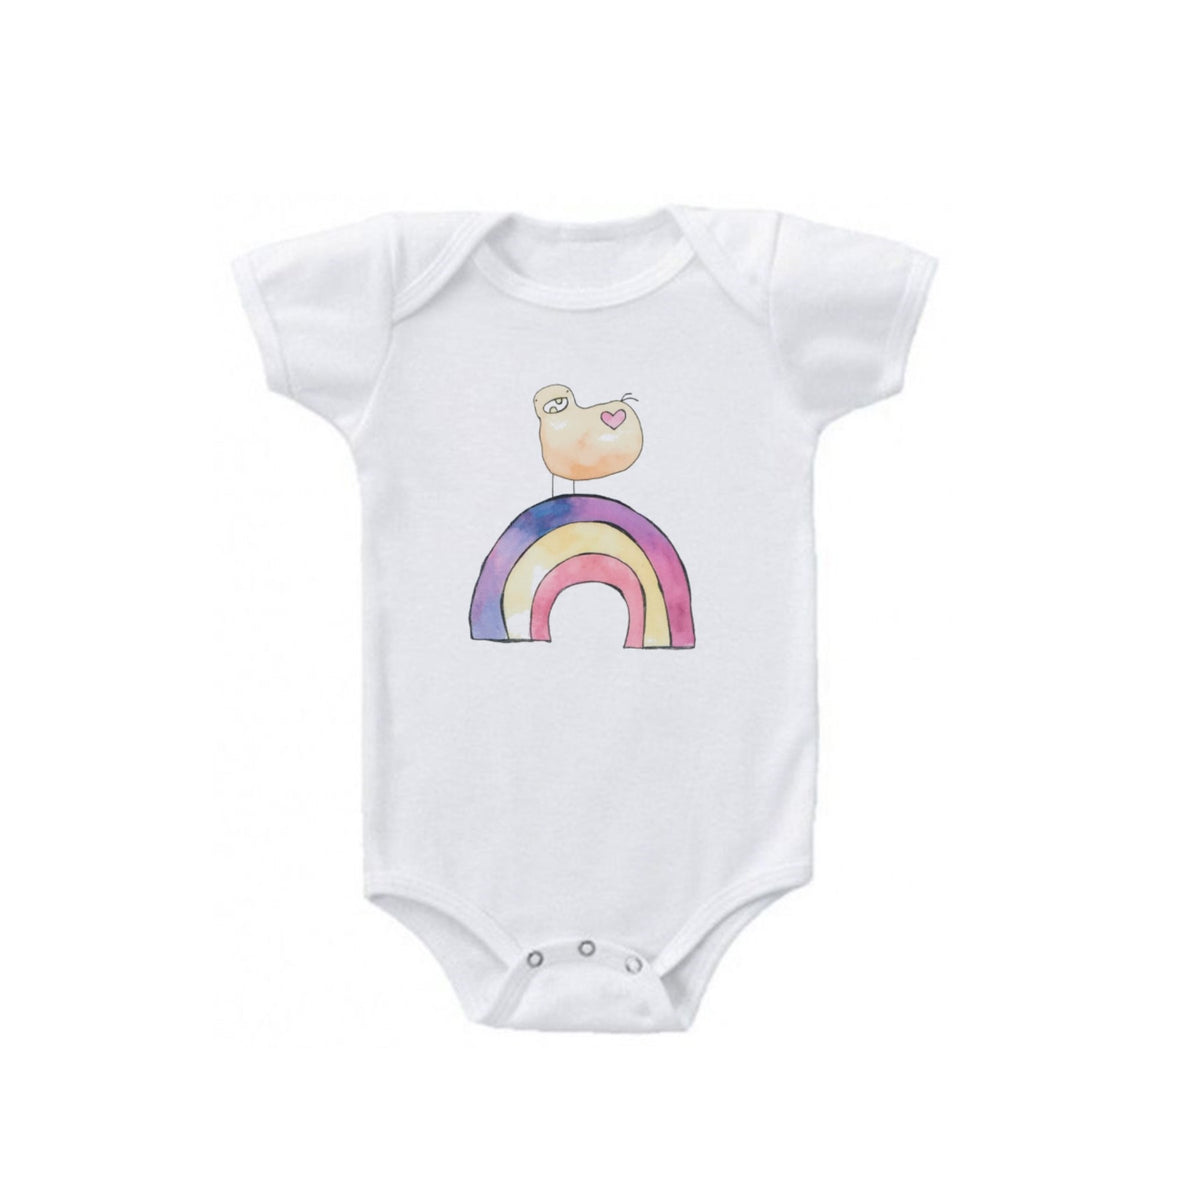 Happy Rainbow Baby Onesie!